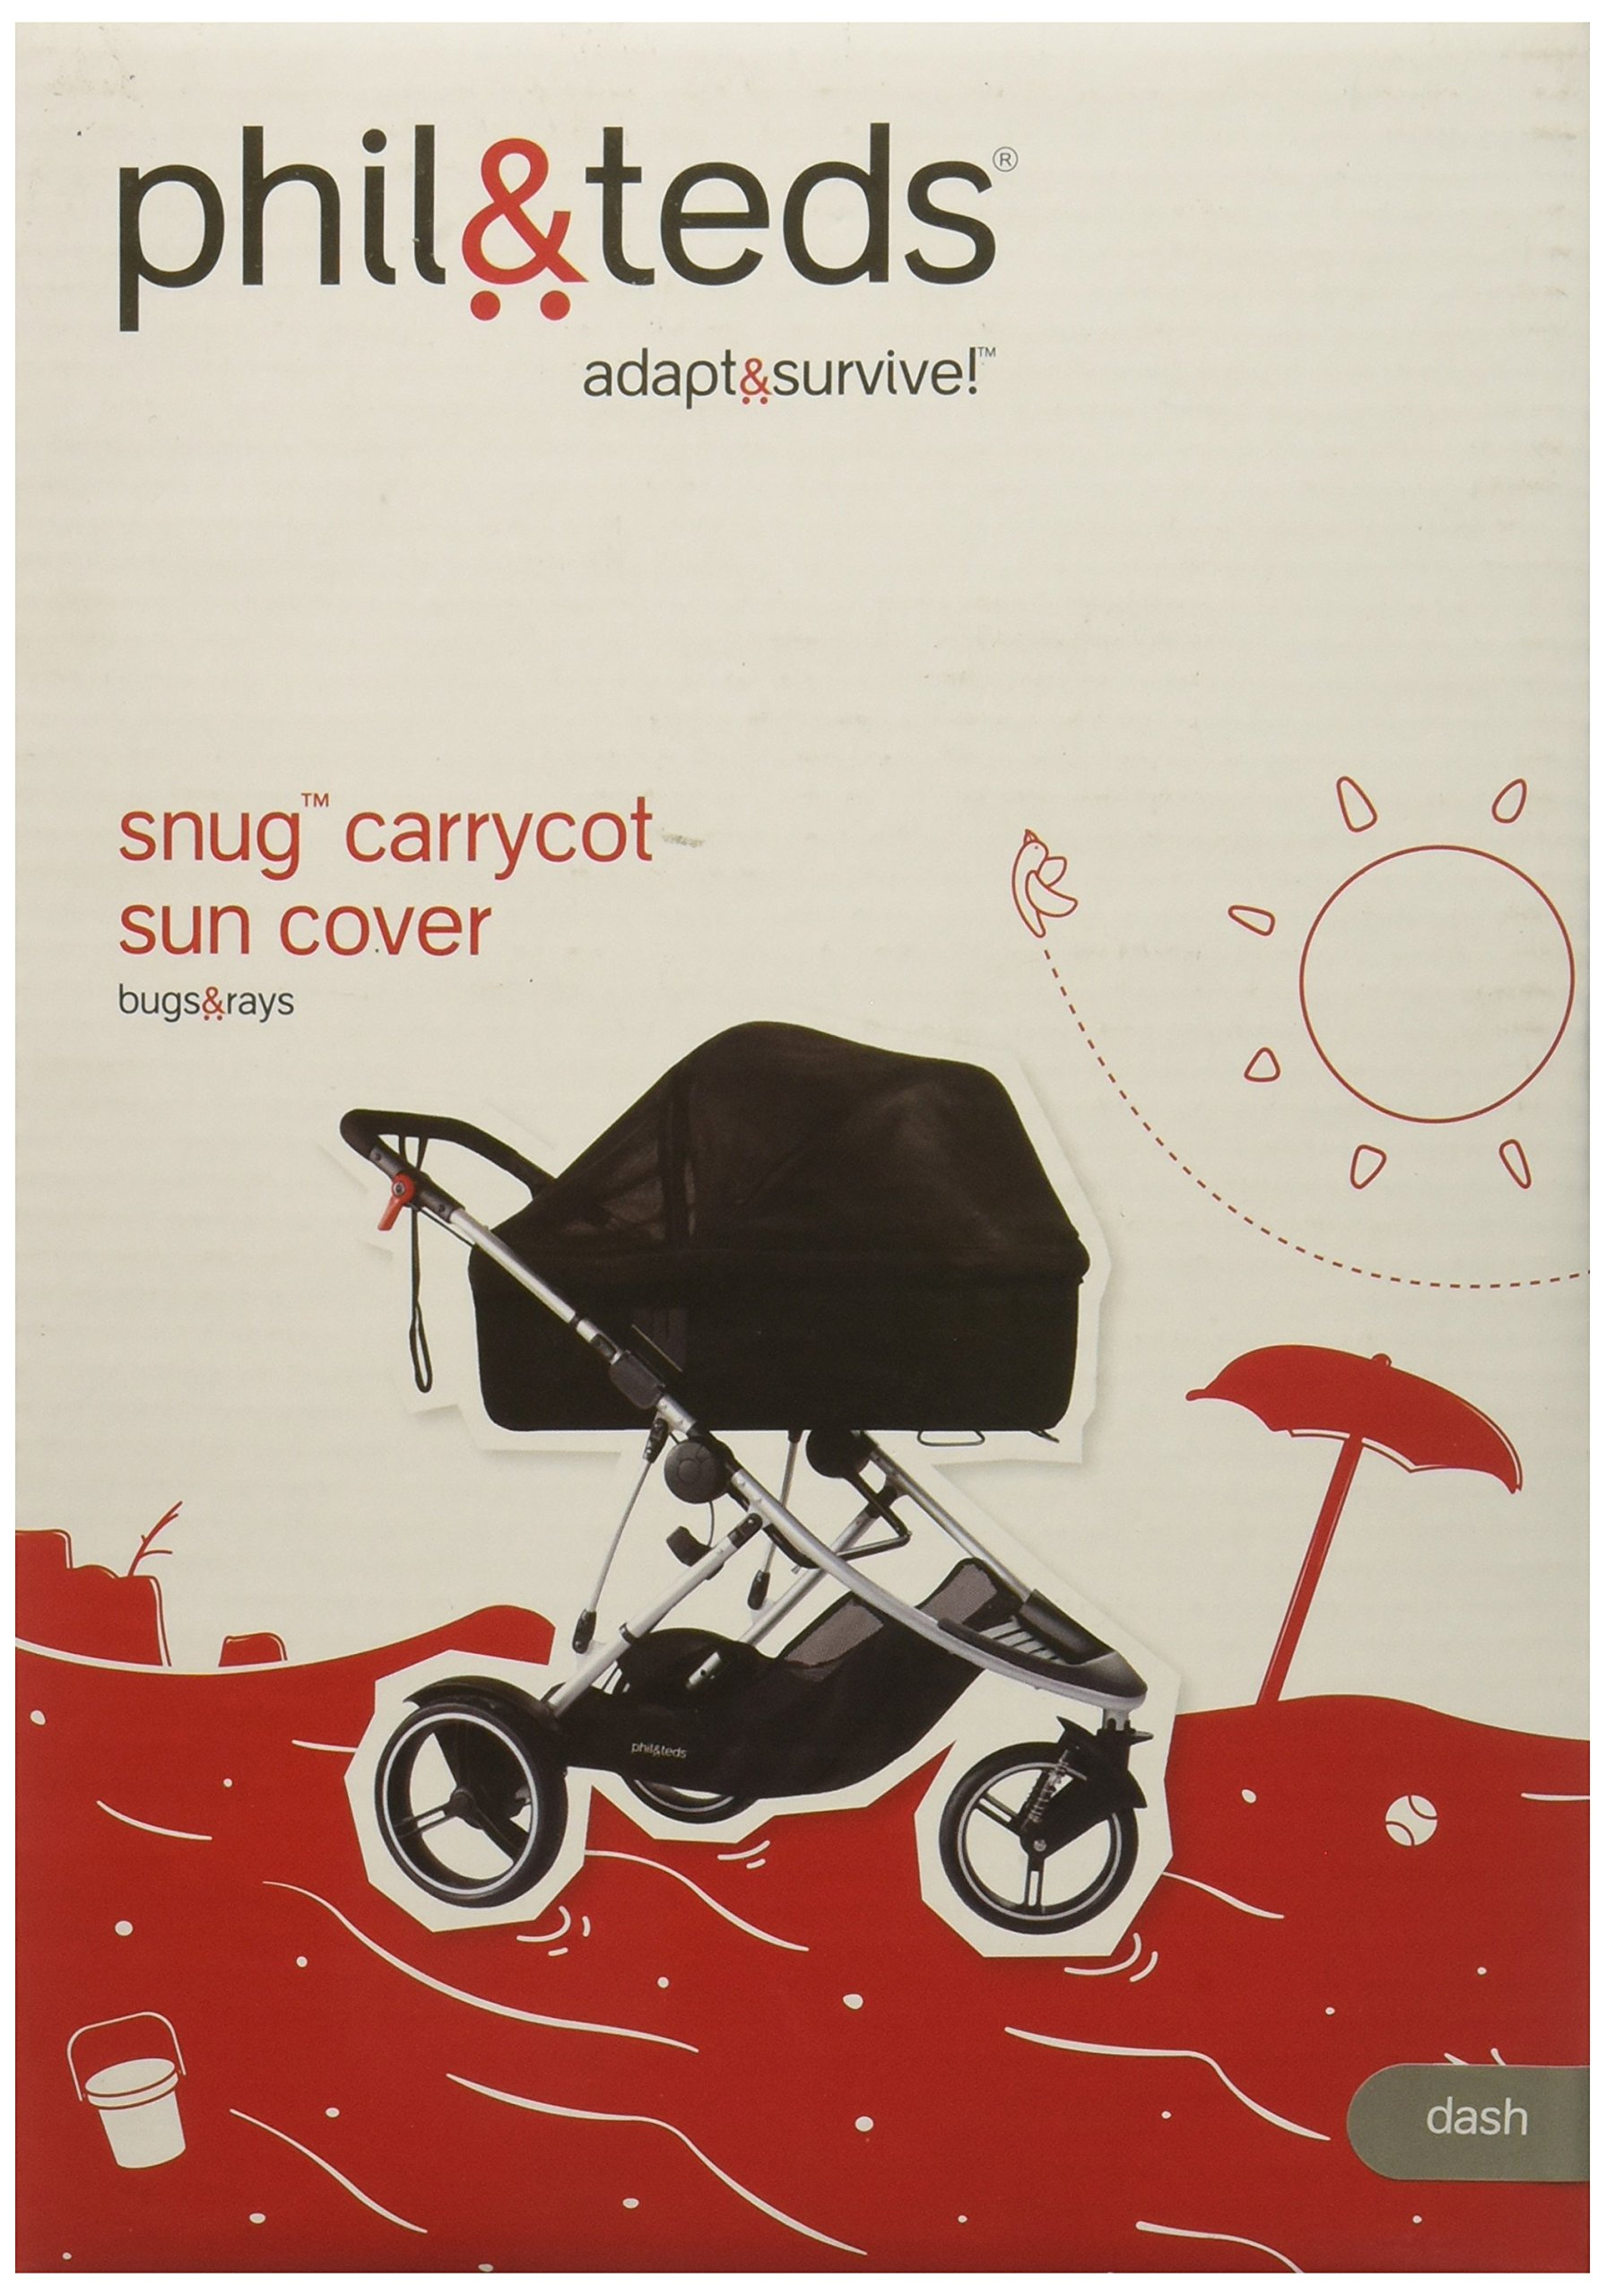 phil&teds Sun Cover for Dash Carrycot